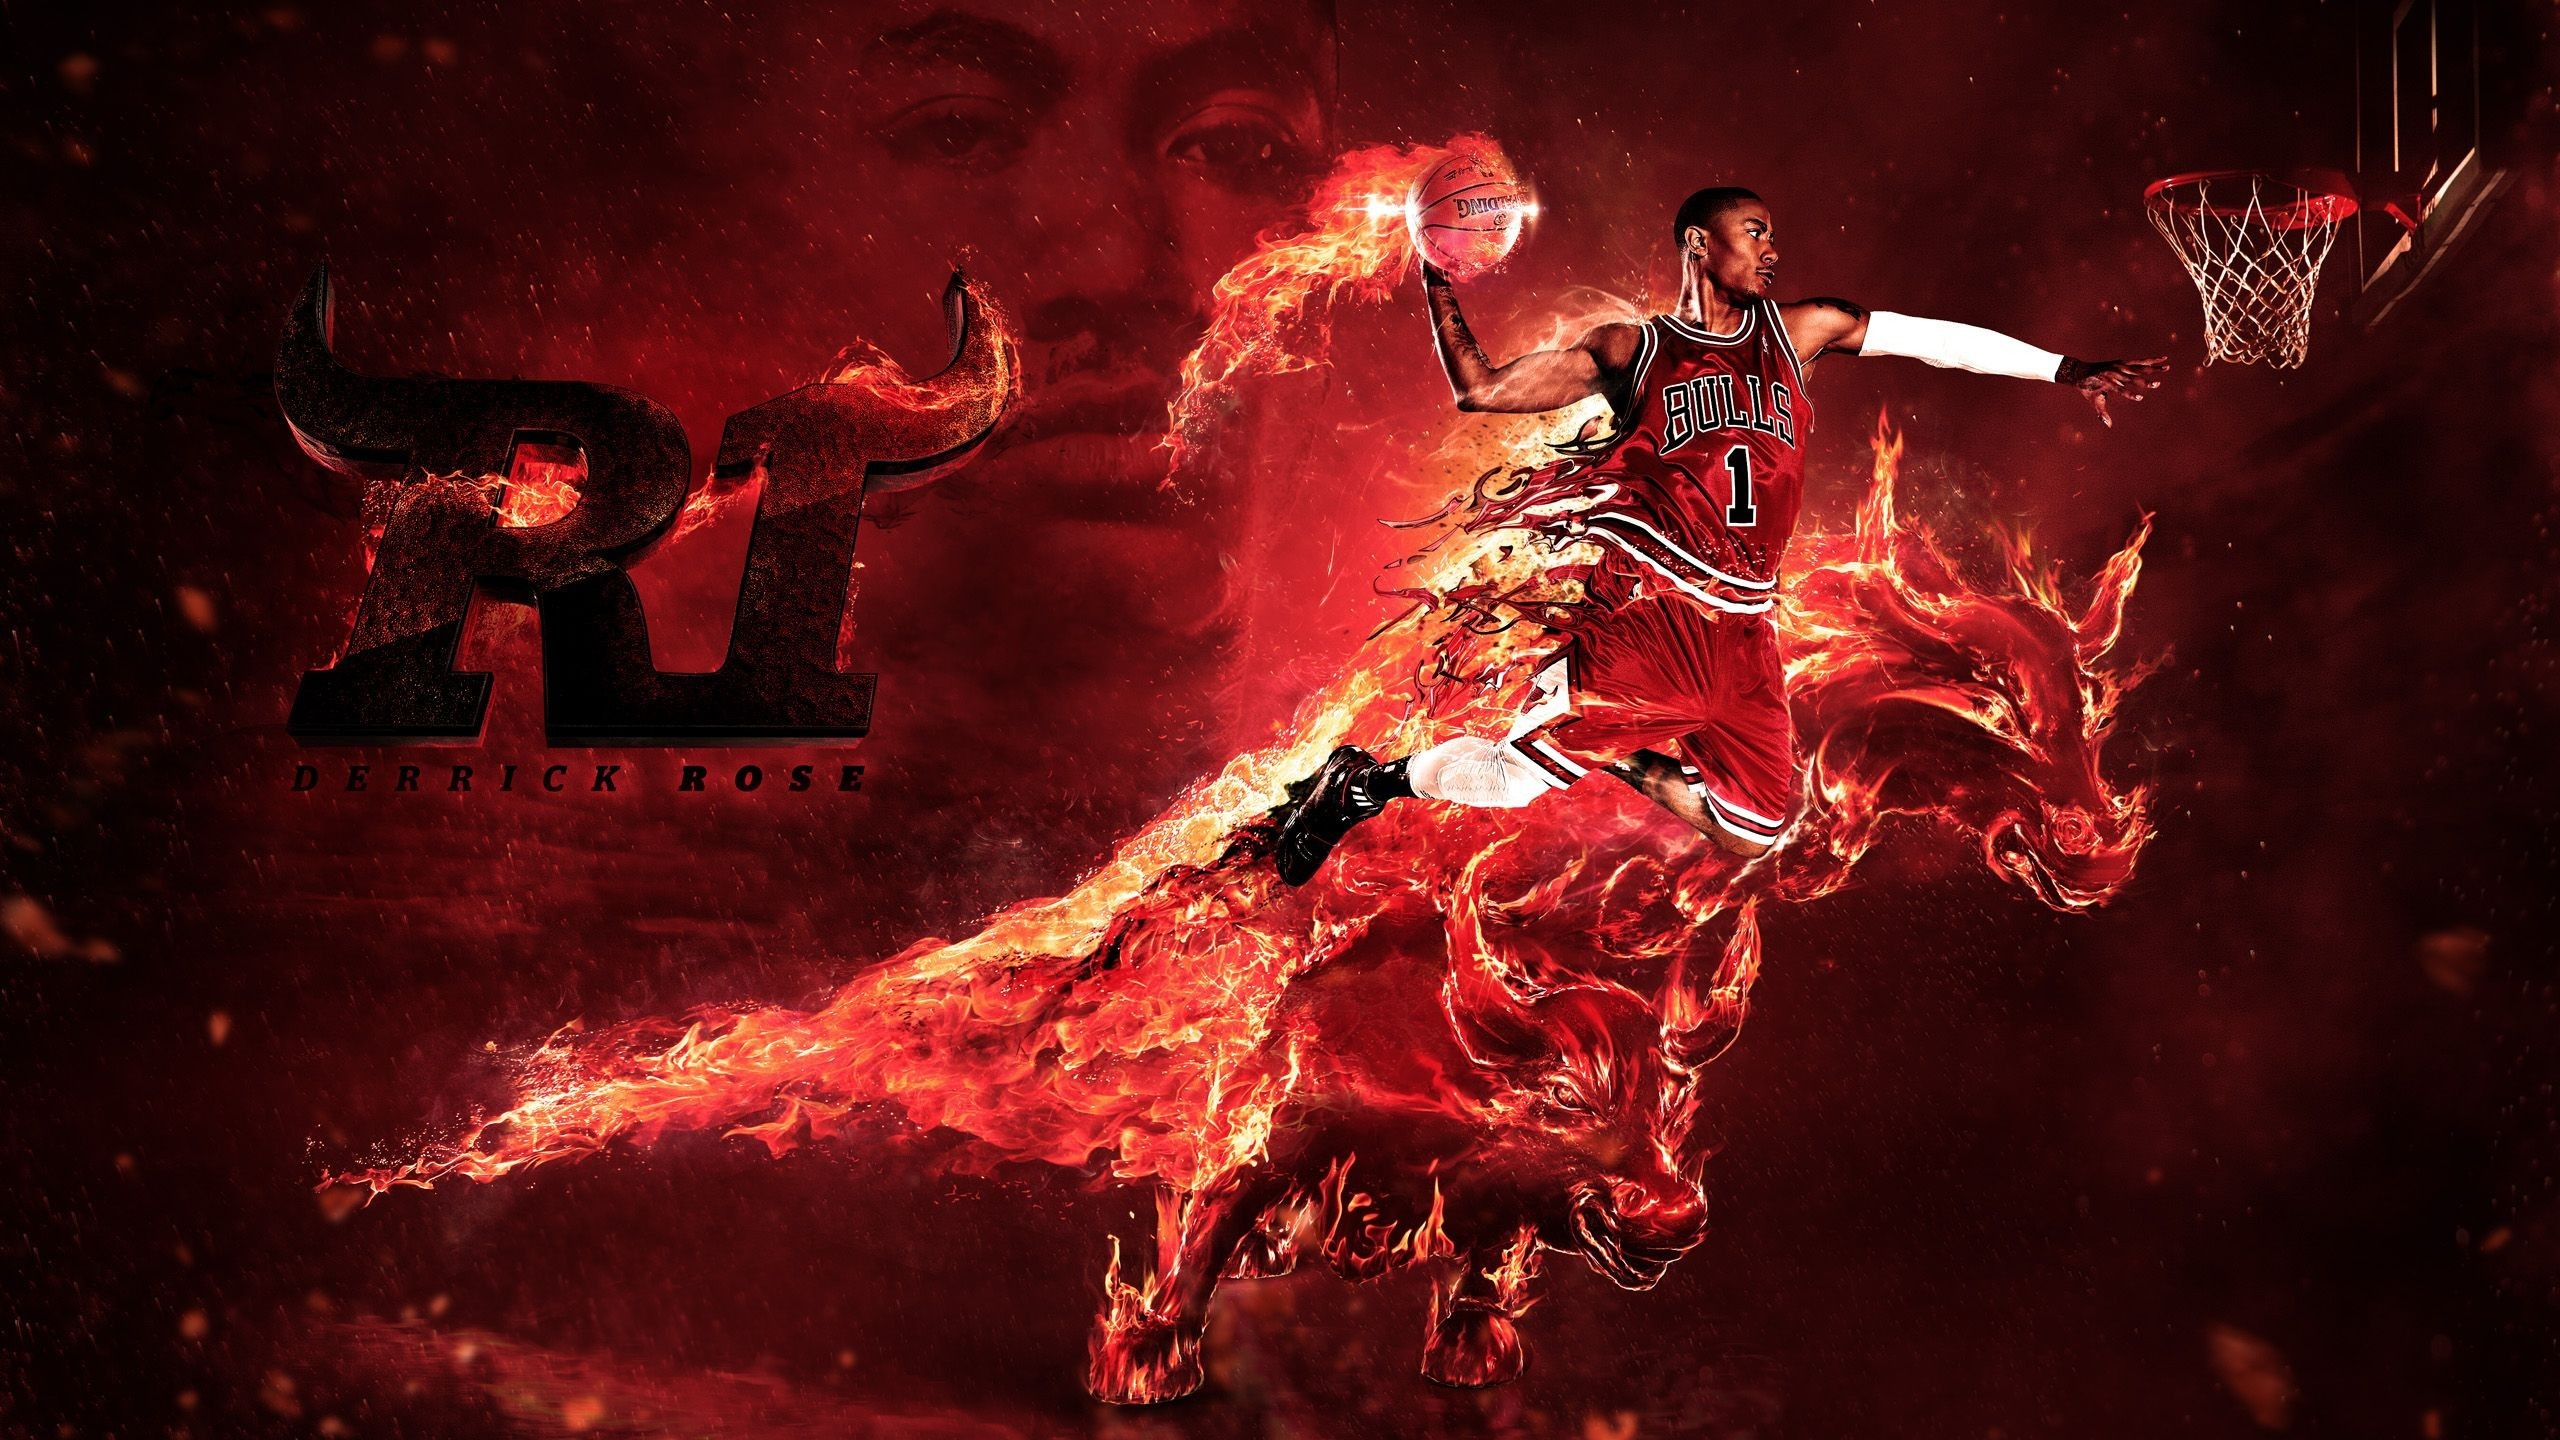 Derrick rose wallpapers hd 2018 80 background pictures 2560x1600 nba wallpaper tag download hd wallpaperhd wallpapers page 0 thecheapjerseys Gallery